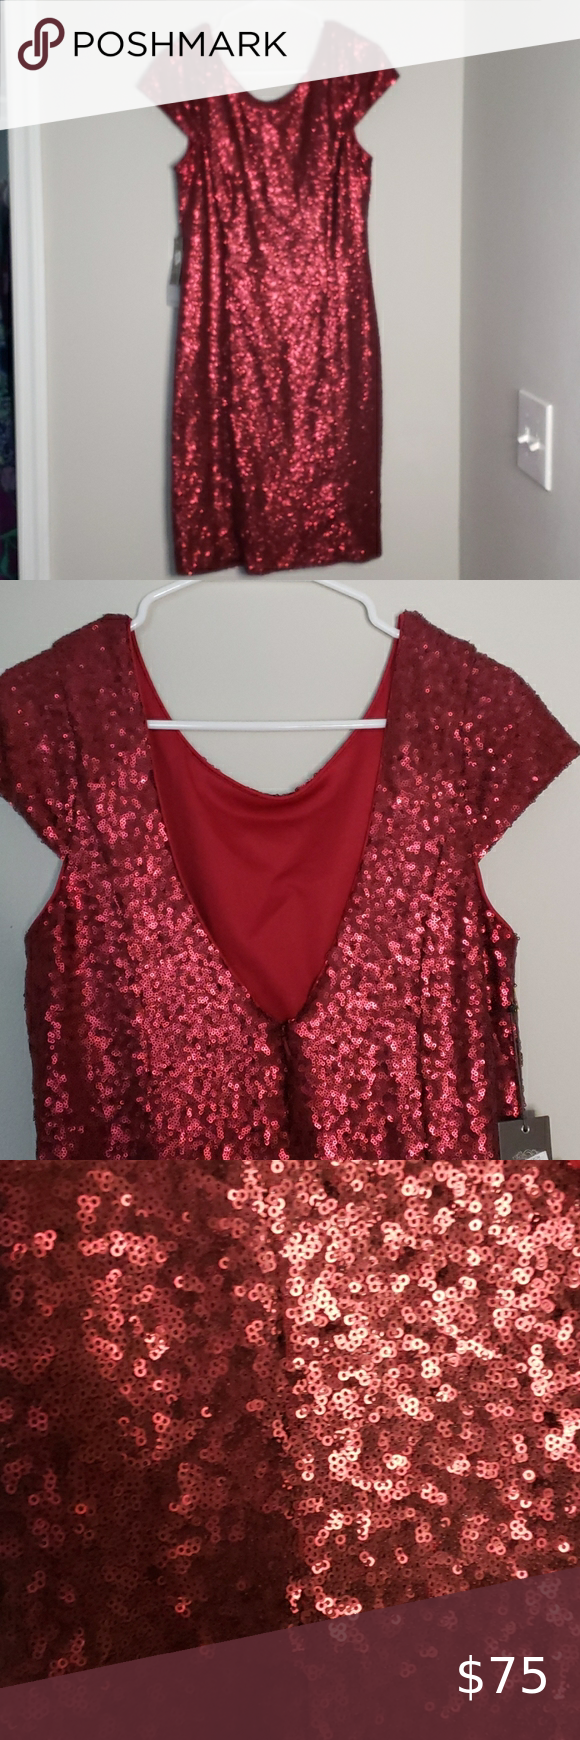 Vince Camuto Sequin Red Dress With V Back Red Dress Vince Camuto Dress Dresses [ 1740 x 580 Pixel ]